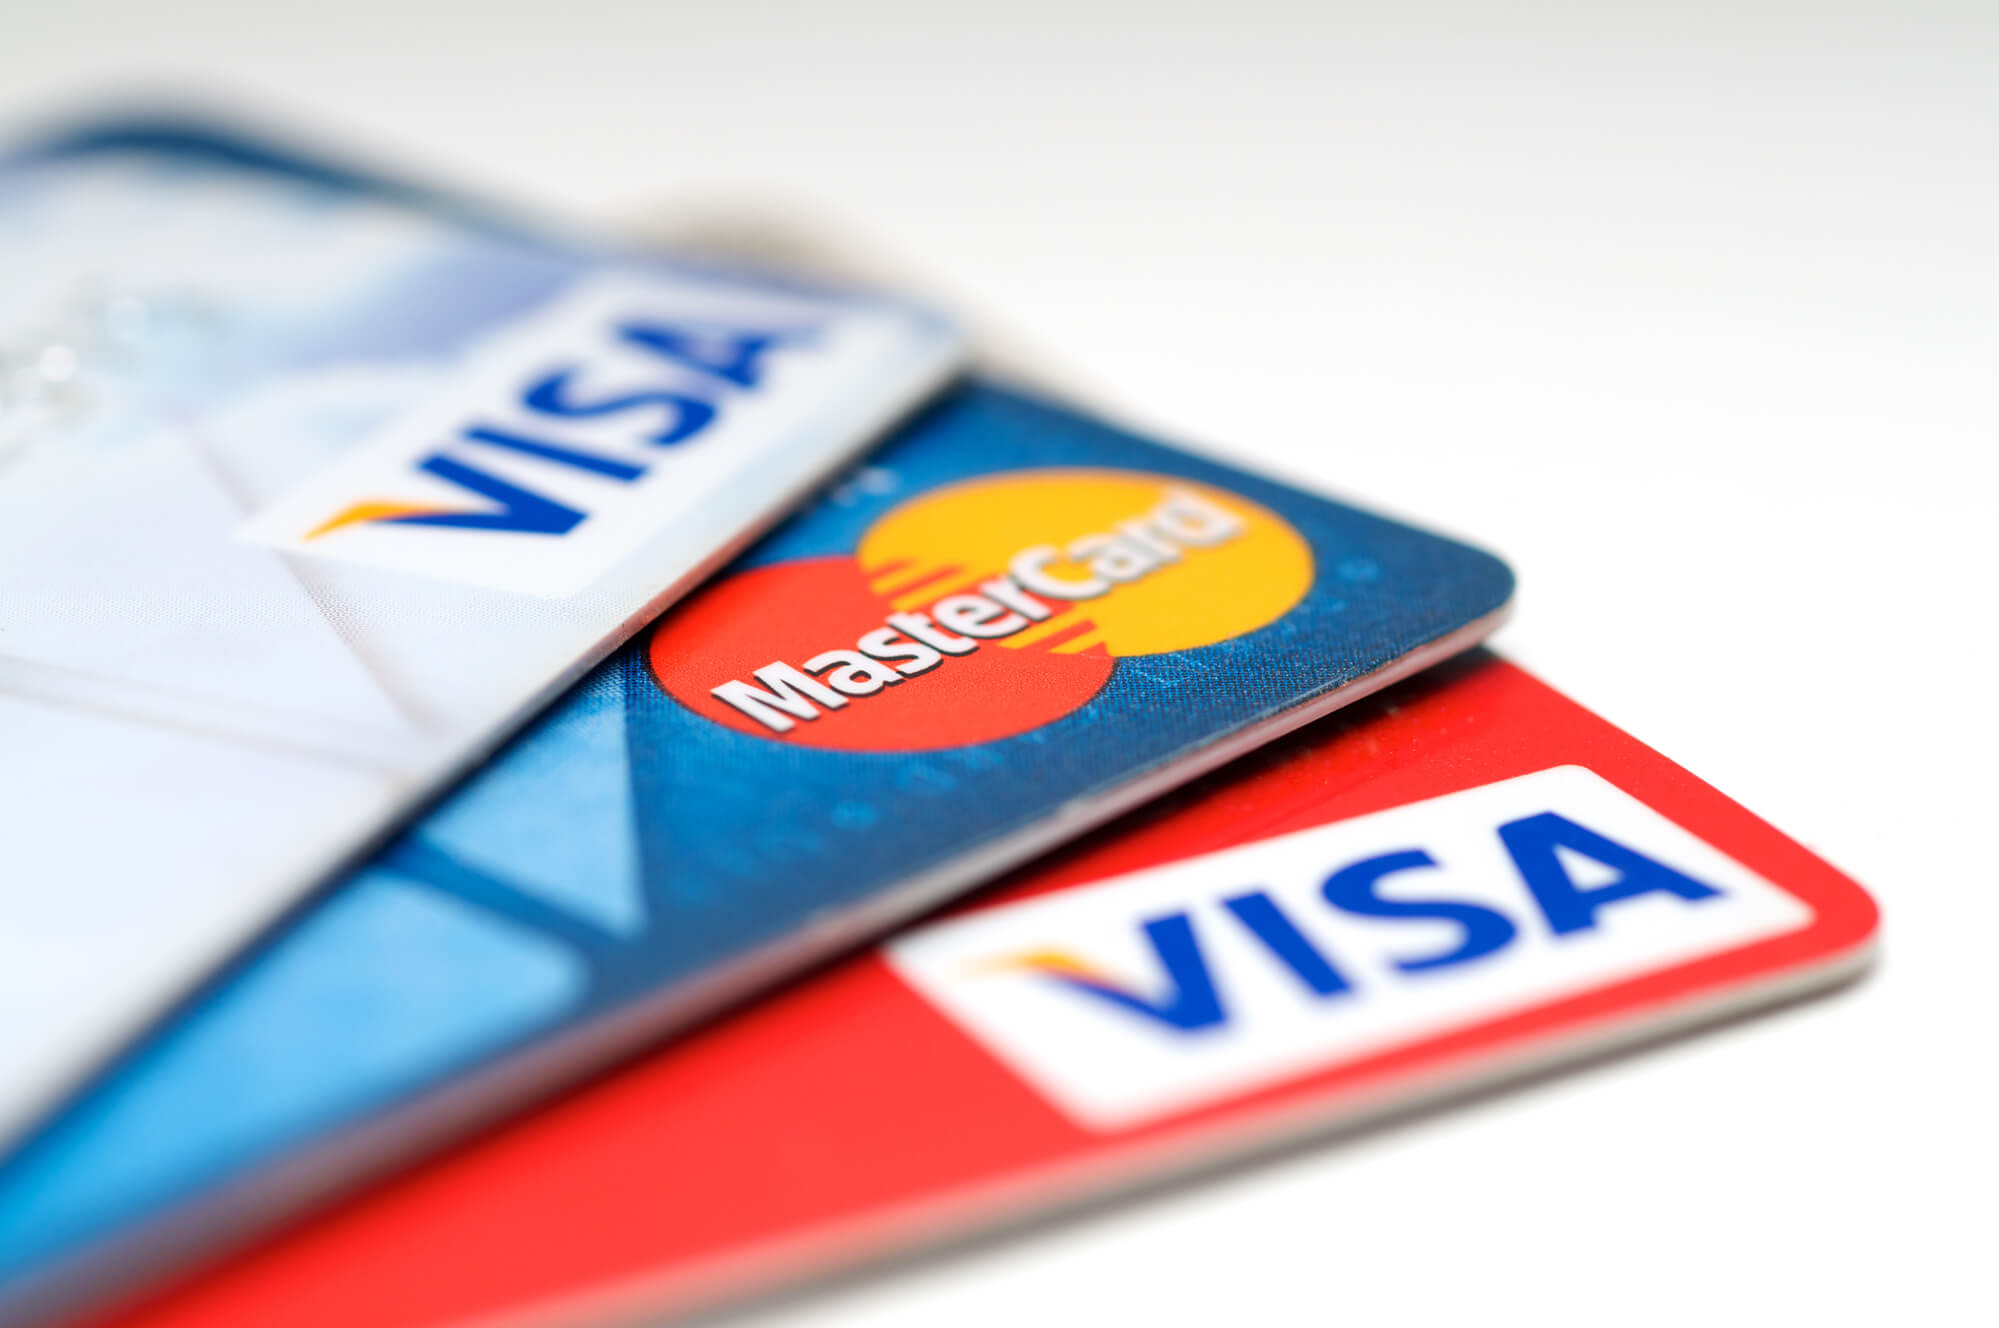 Your Credit Card Points Can Finance Your Vacation: Here's How